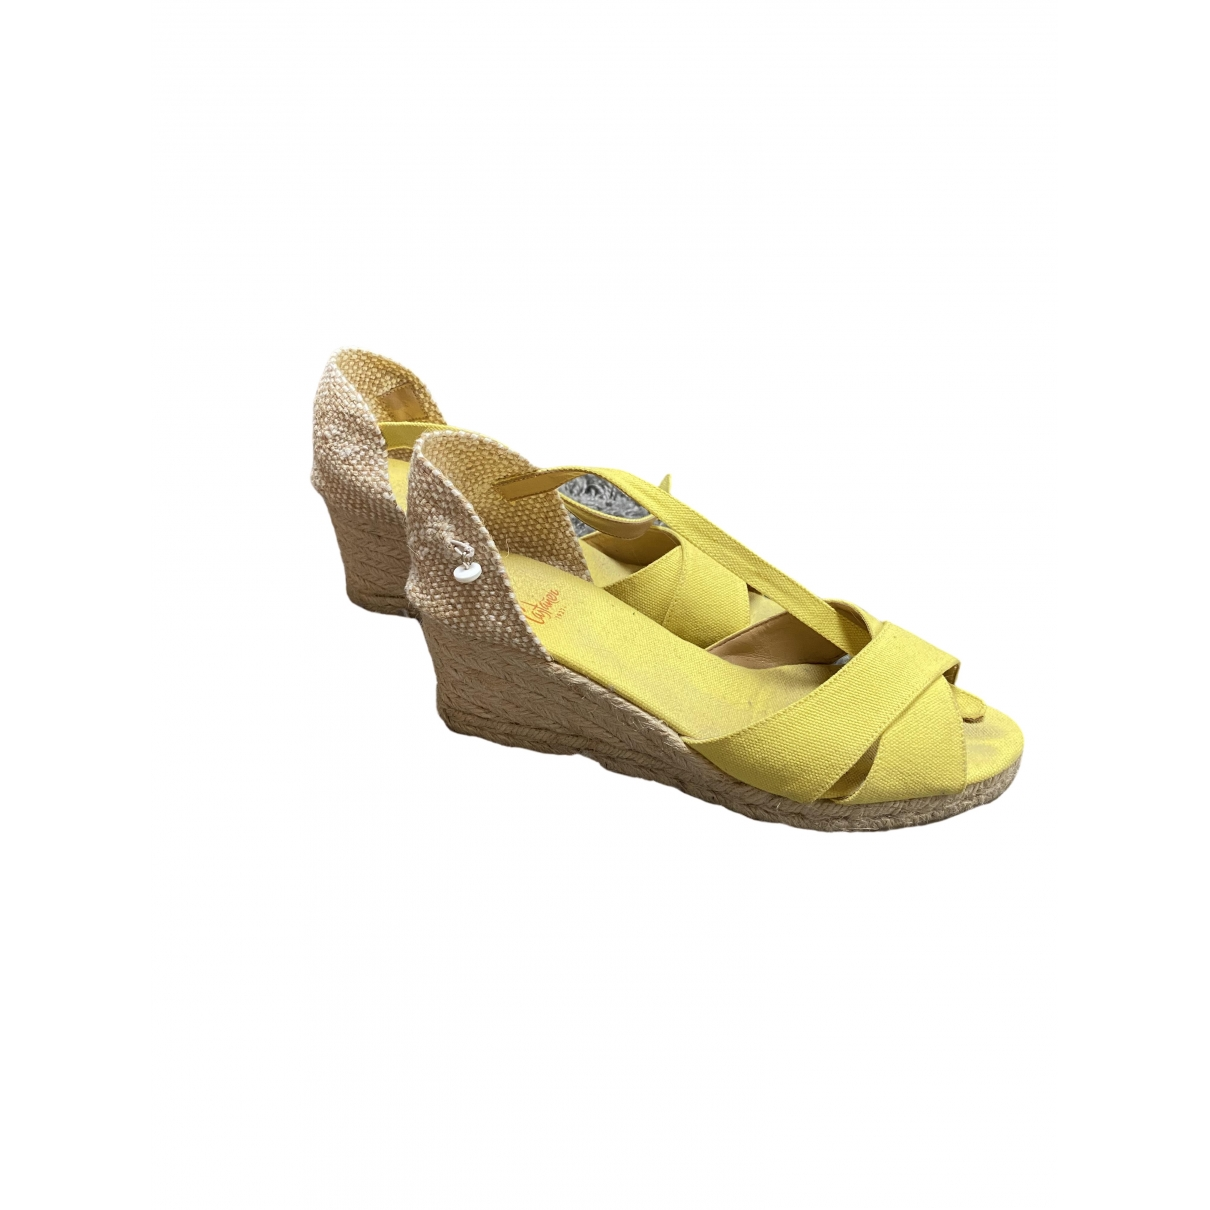 Castaner \N Yellow Leather Sandals for Women 39 EU